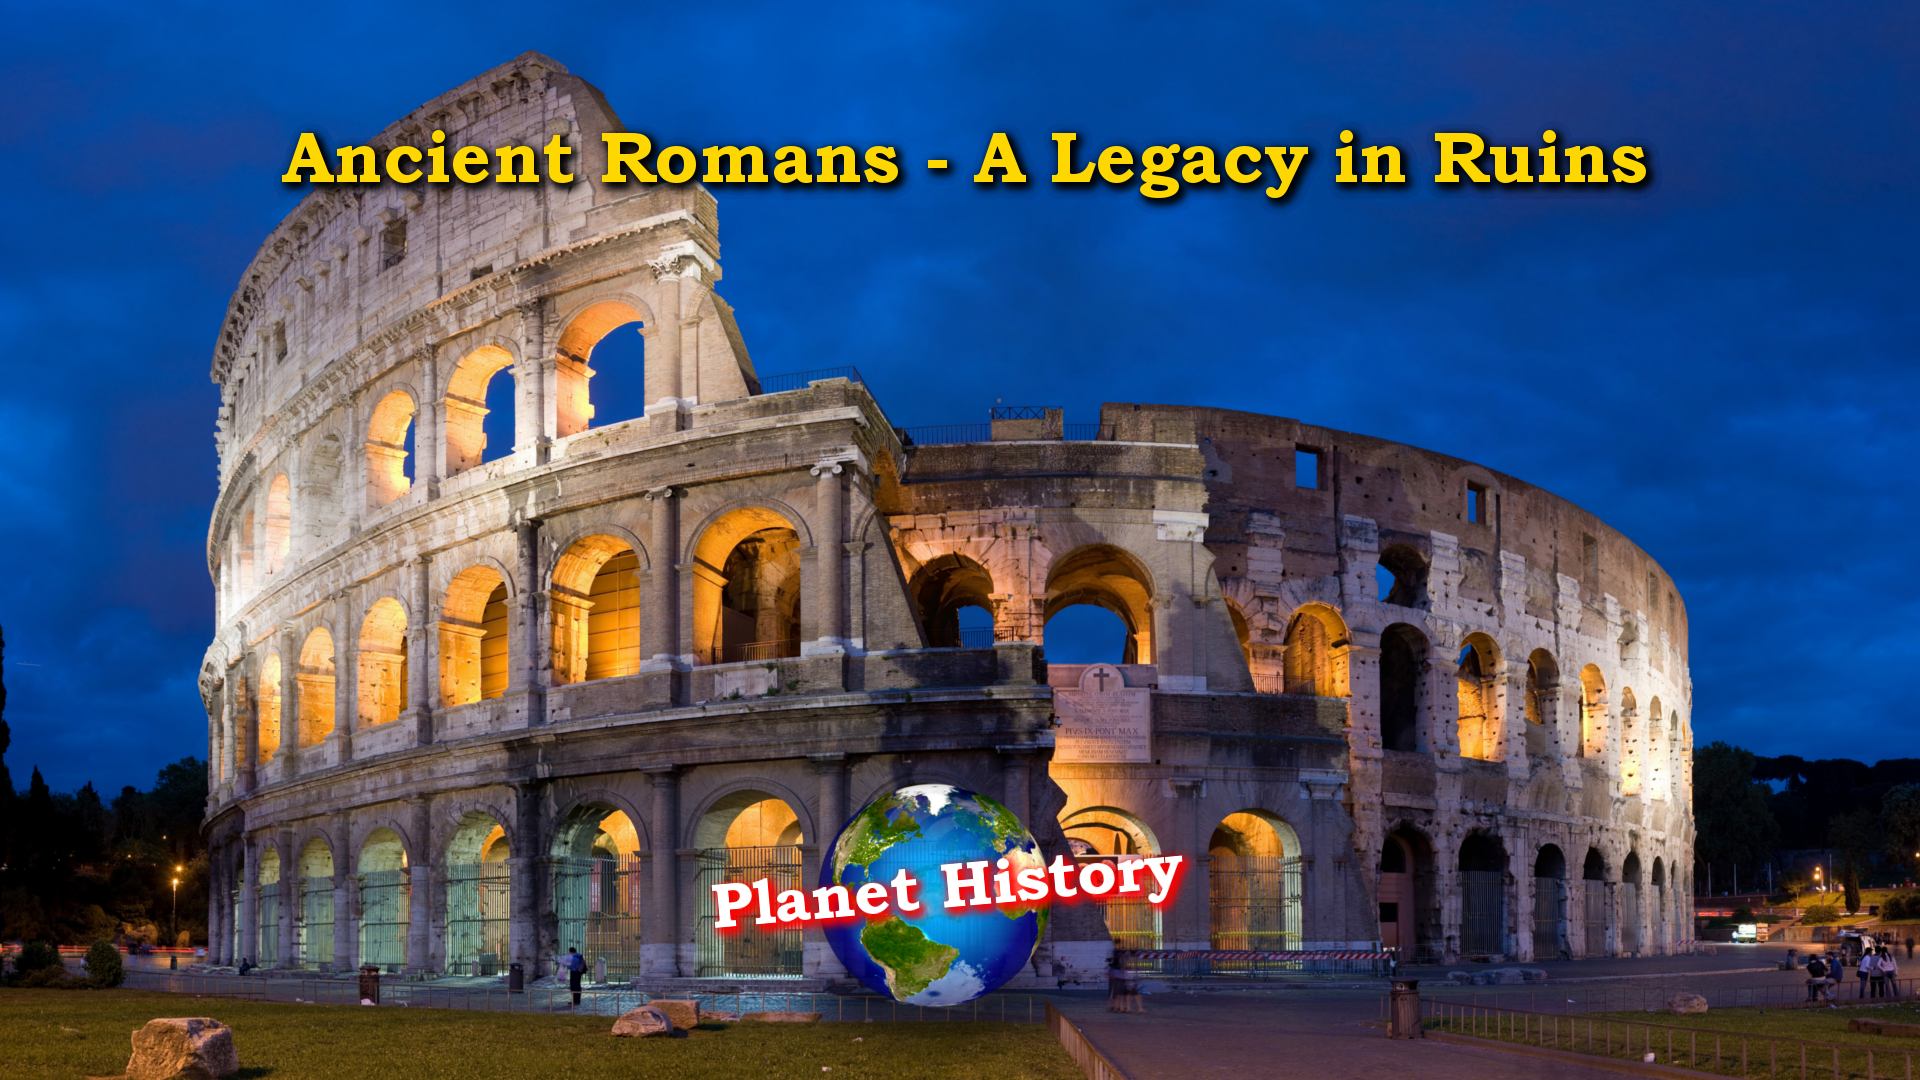 Ancient Romans - A Legacy in Ruins